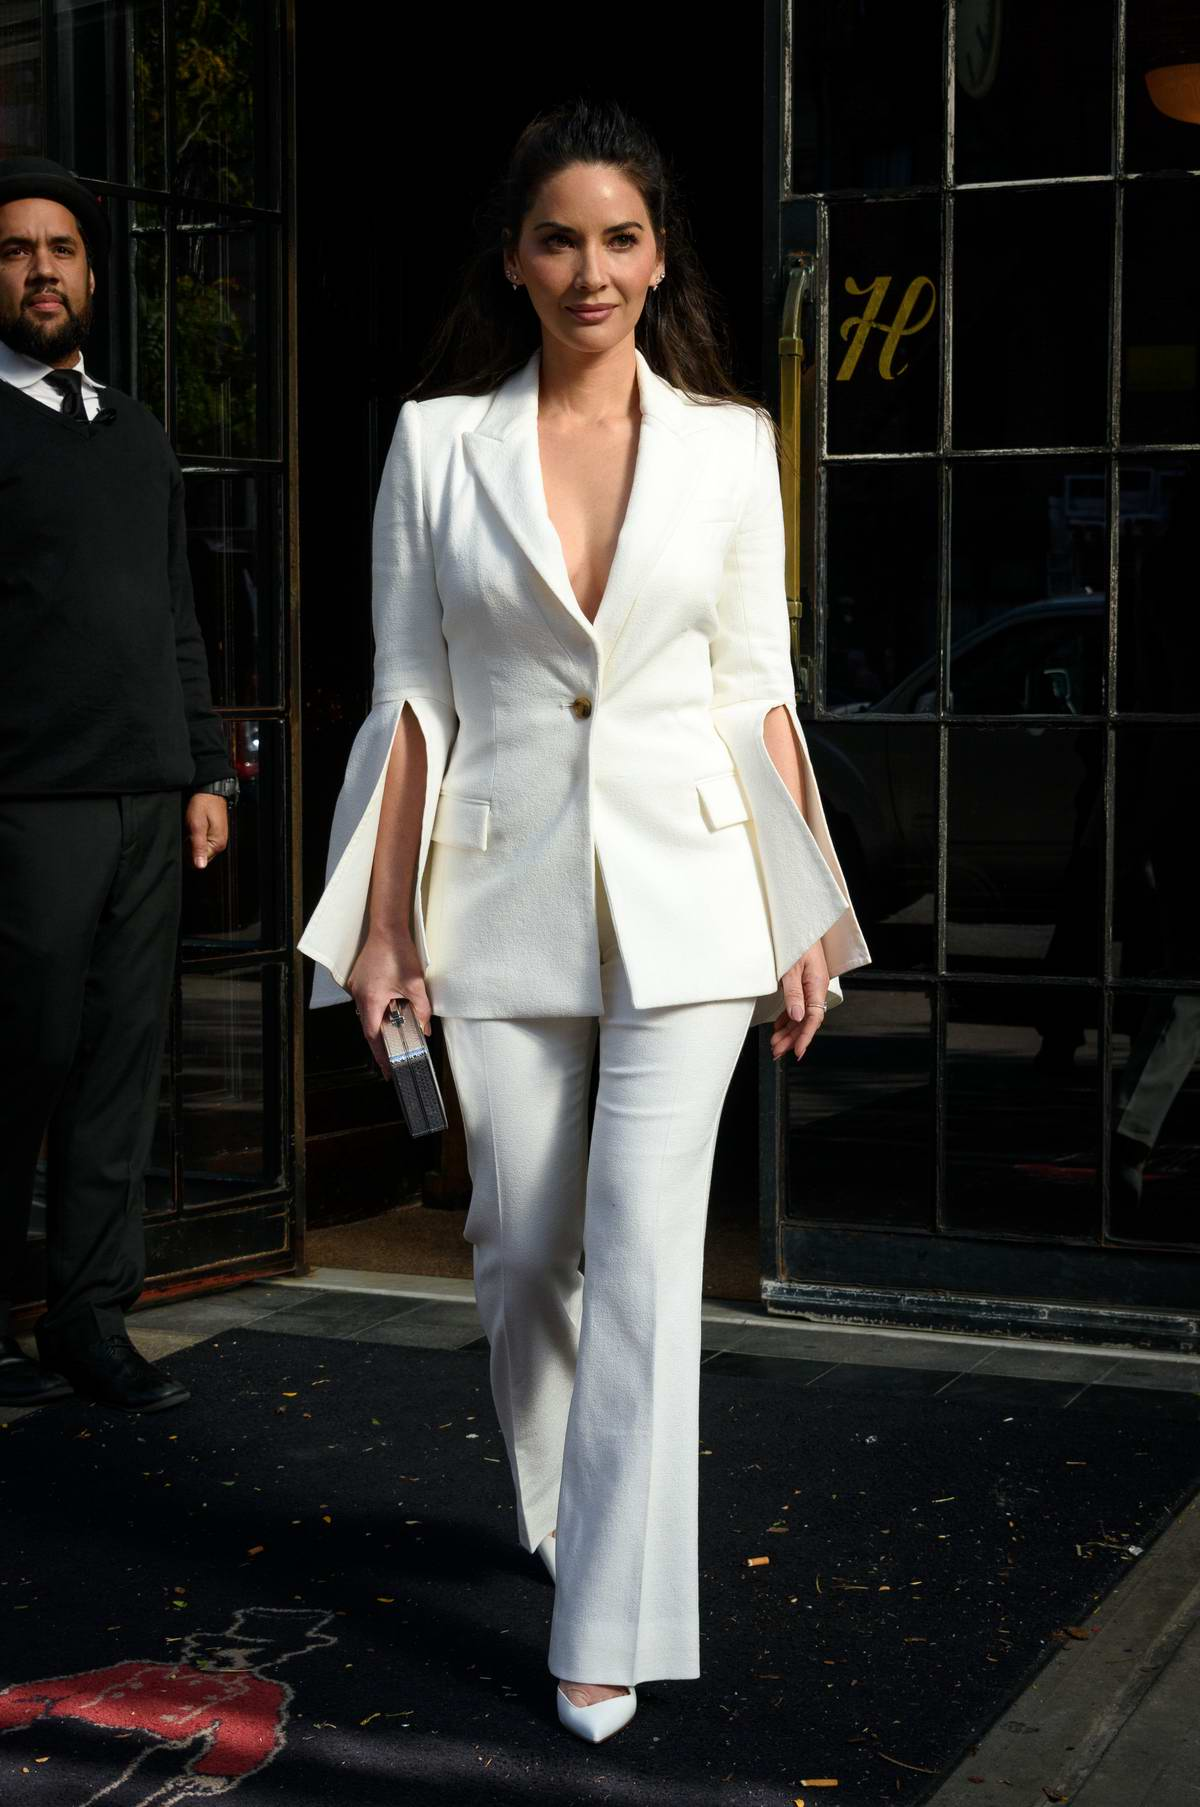 Olivia Munn wears a white pantsuit as she leaves the Bowery Hotel in New York City